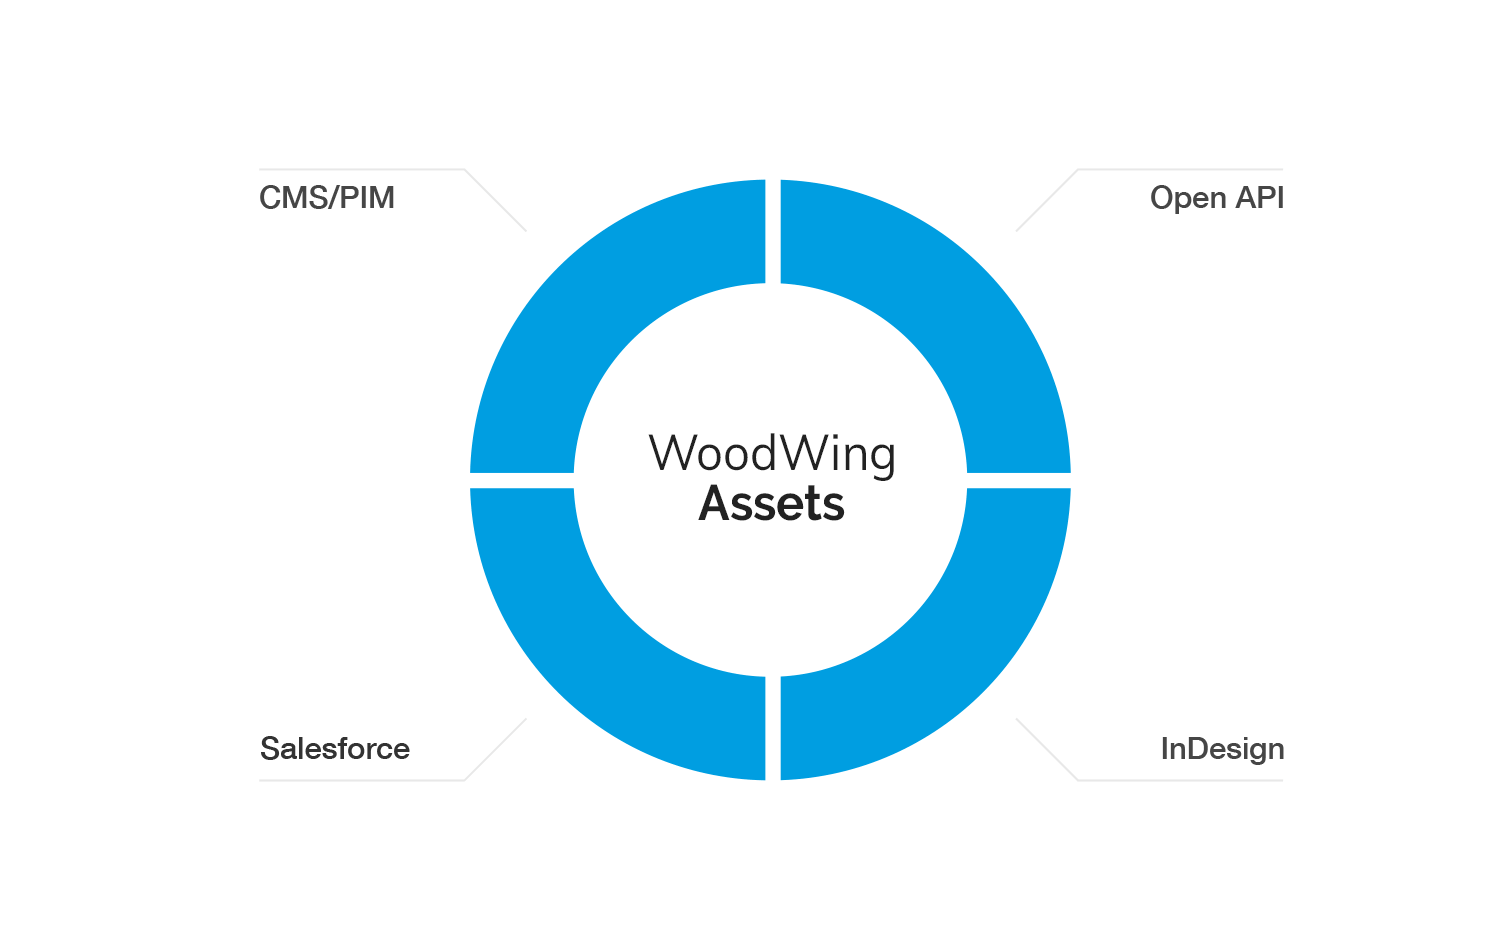 woodwing_assets-publish.png